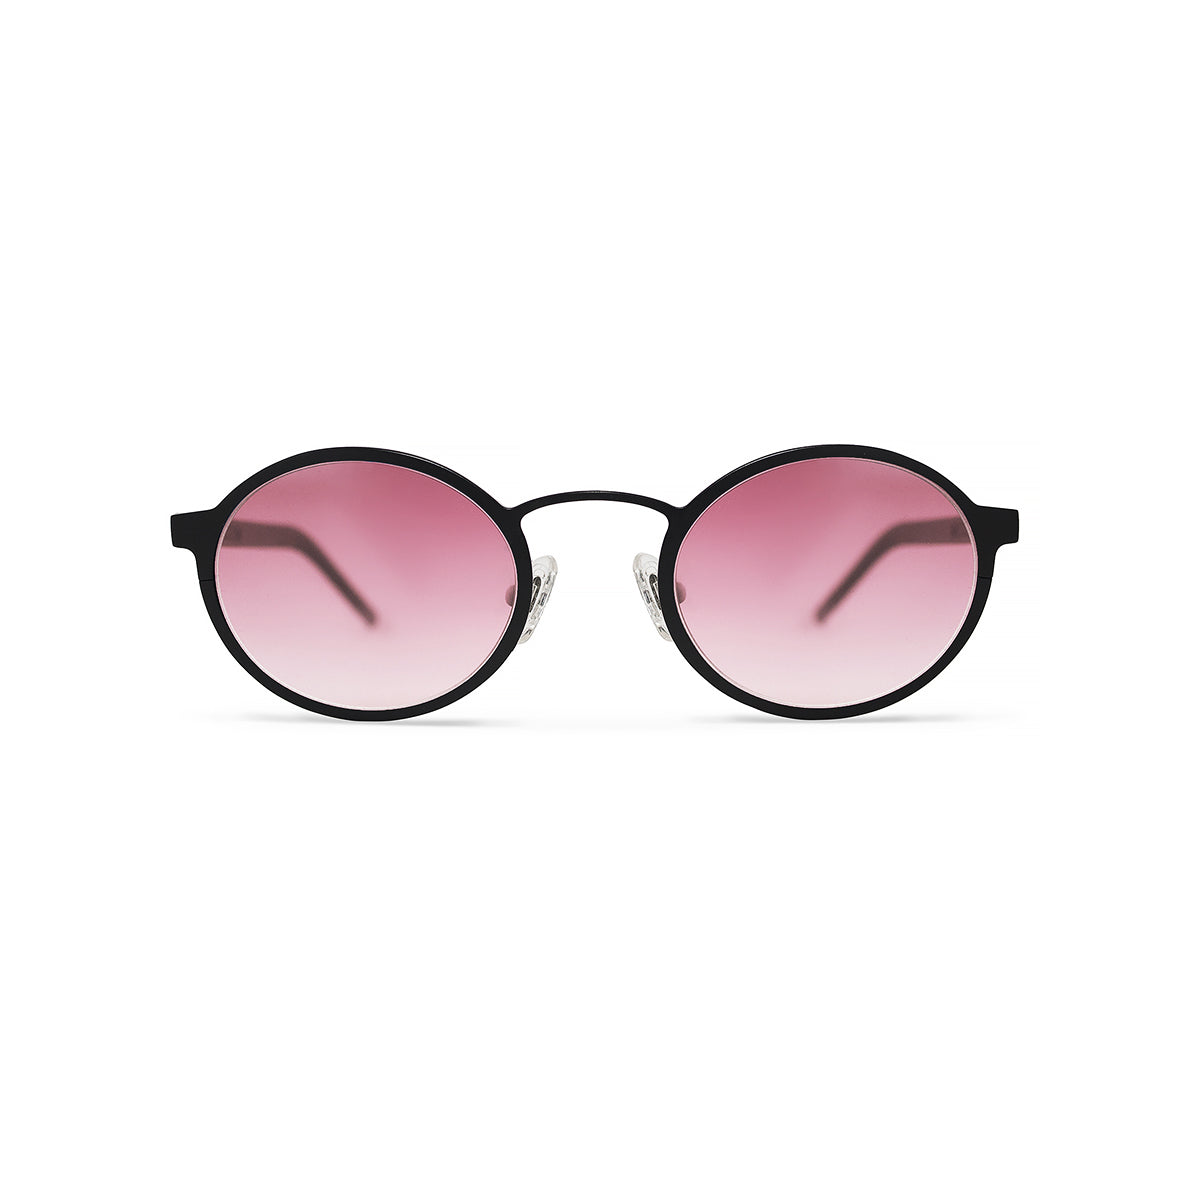 Metal. Gloss Black. Blush Lens. - BLYSZAK eyewear eyewear - eyewear, optical, sunglasses